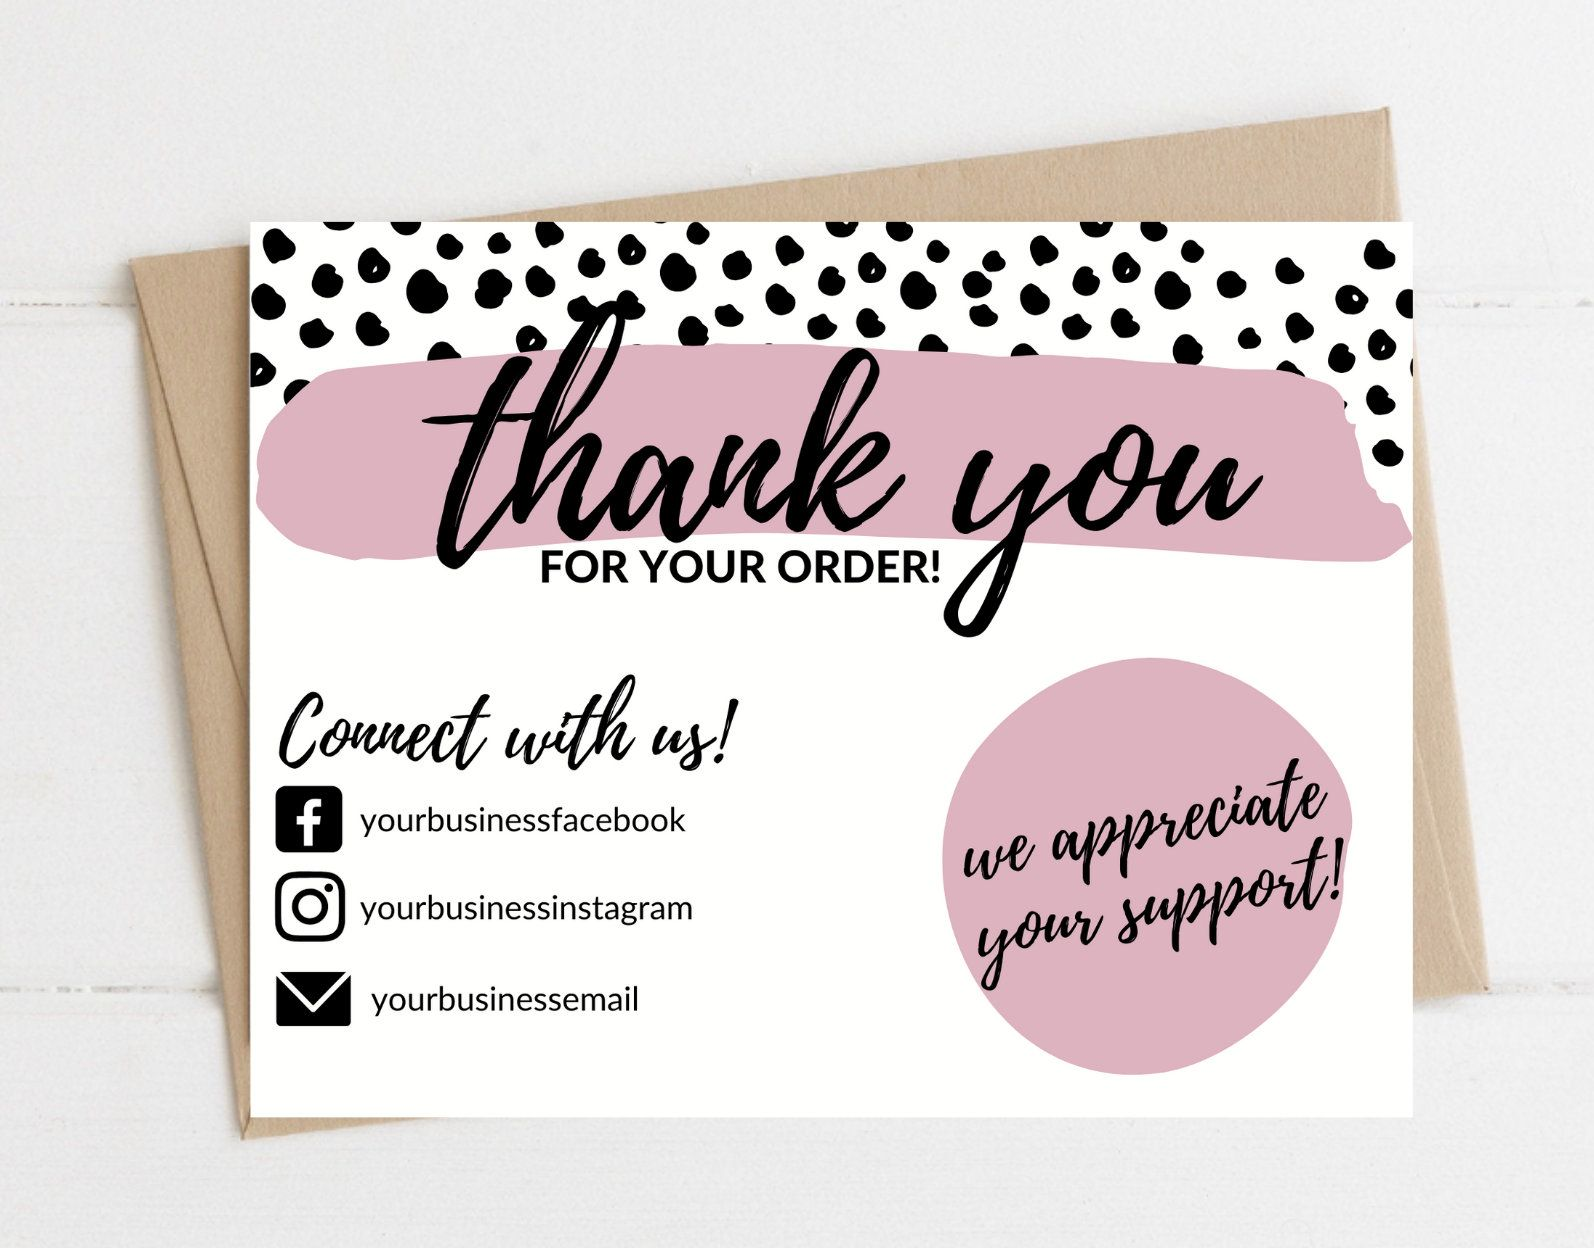 Instant Download Thank You Card Editable And Printable Thank Etsy In 2021 Printable Thank You Cards Thank You Card Design Thank You Card Template